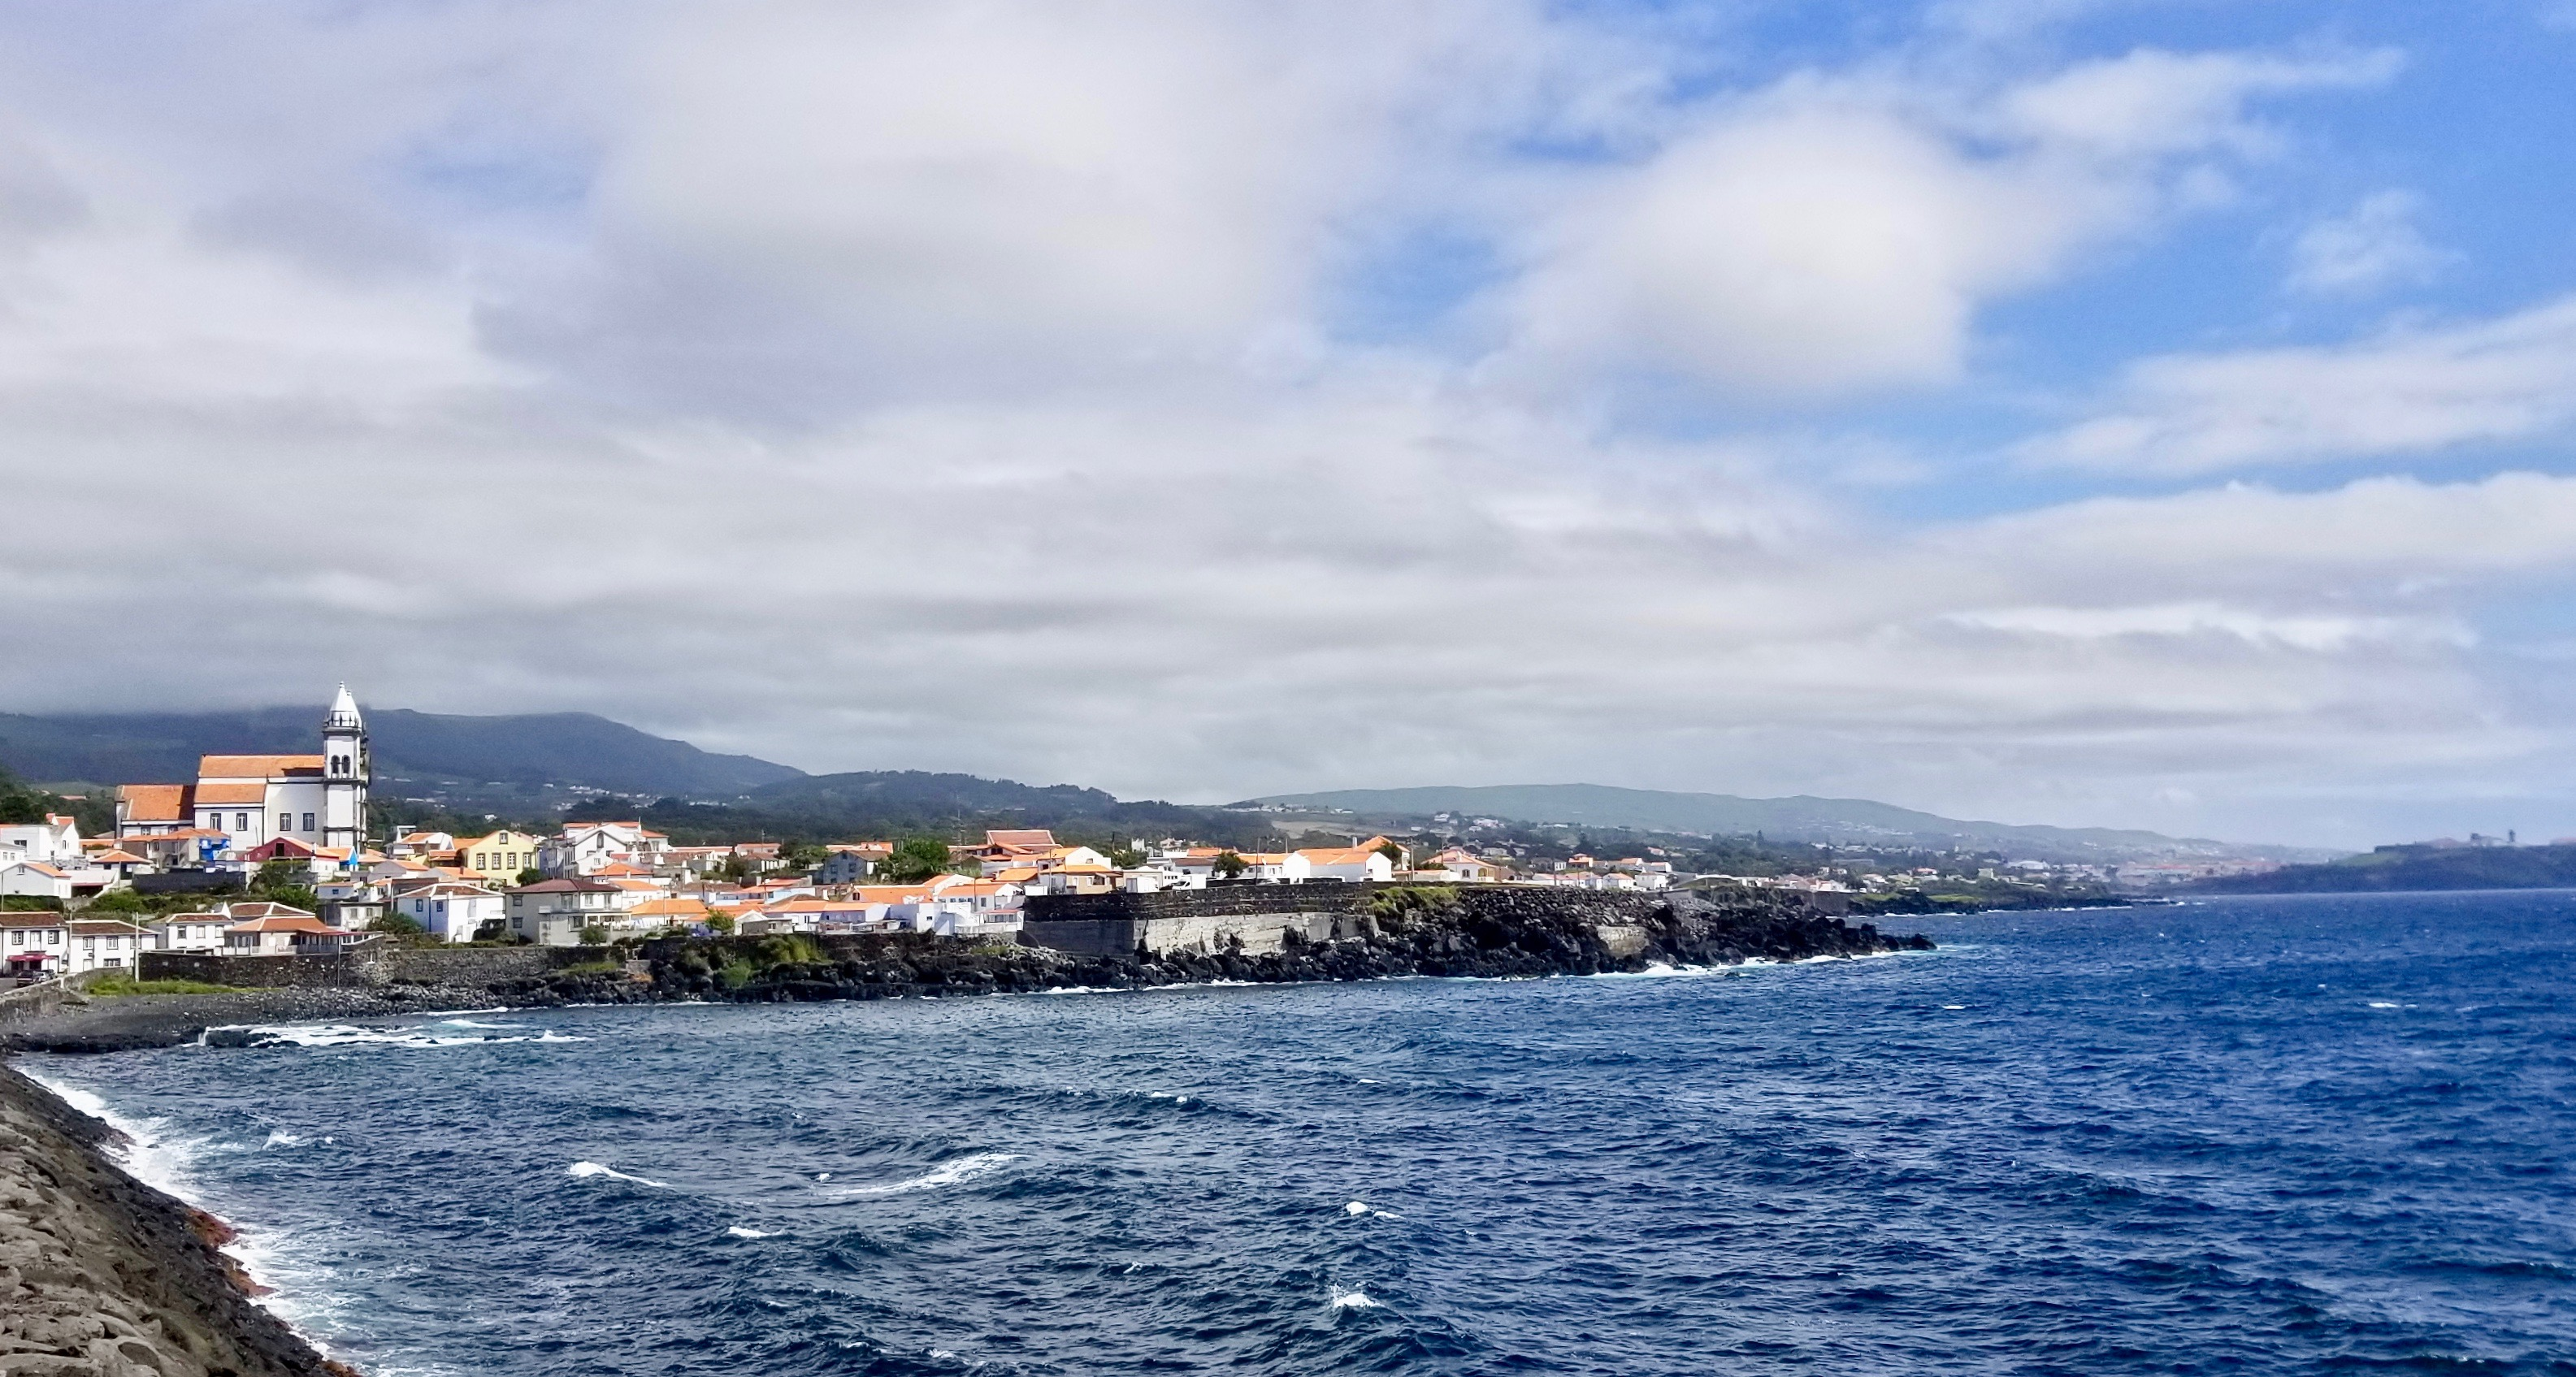 São Mateus da Calheta, a western parish of the municipality of Angra do Heroísmo, as seen on Sept. 16, 2019, on the southern coast of Terceira Island in the Portuguese archipelago of the Azores.